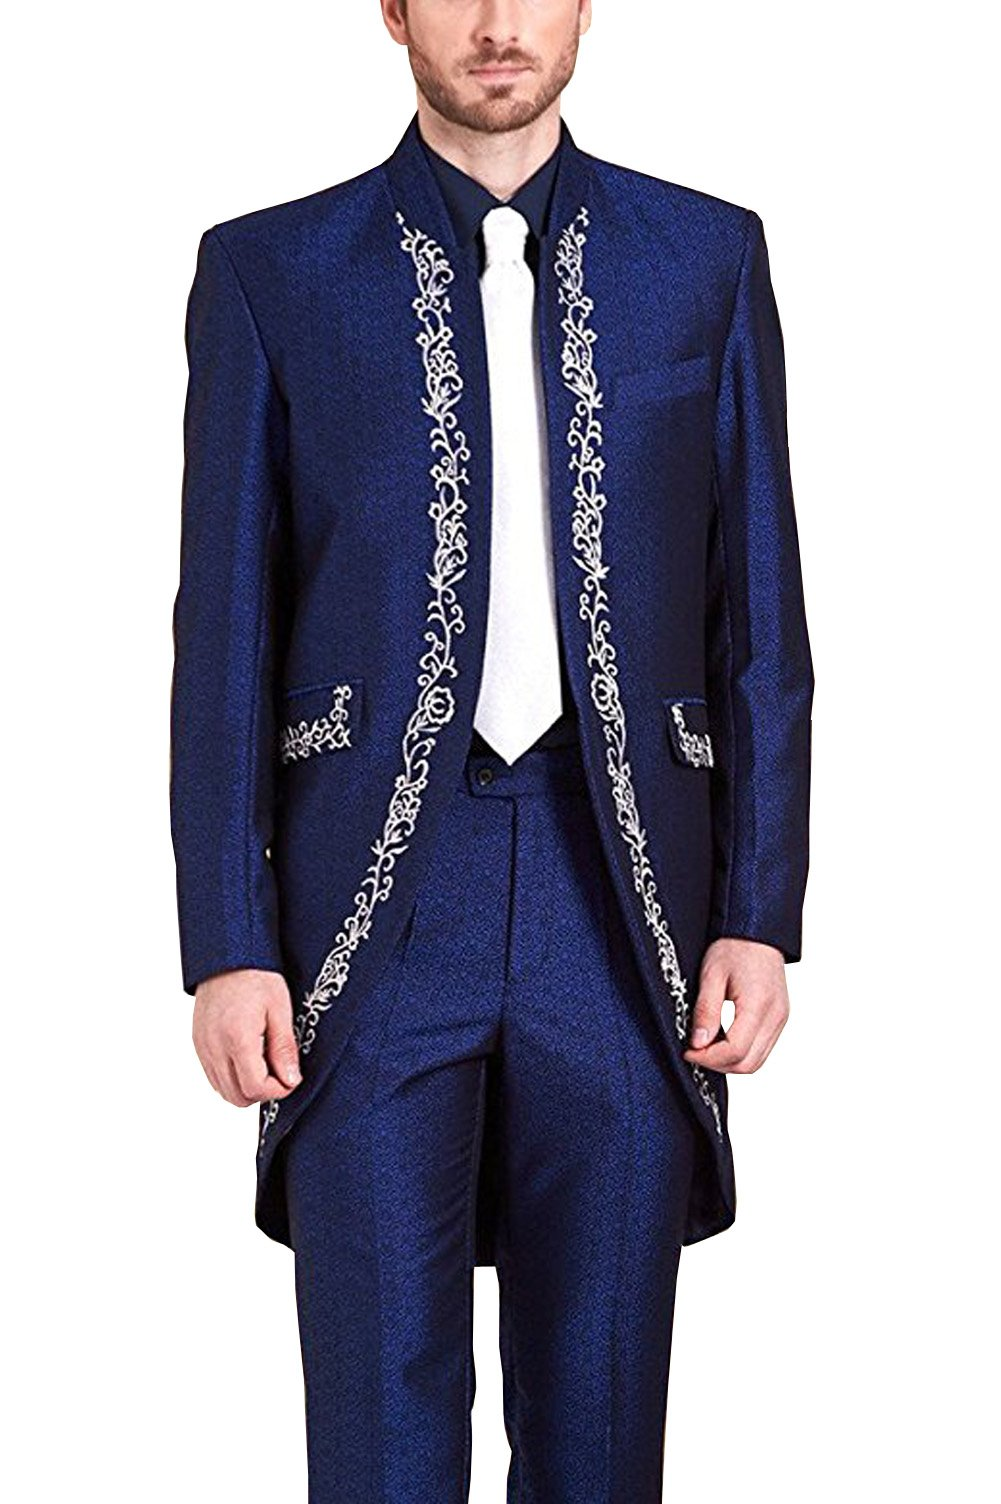 Hanayome Muslim Men's Two Pieces Stand Collor Embroidery Totem Long Tuxedo Suit Wedding Event SI88 (Blue,44)